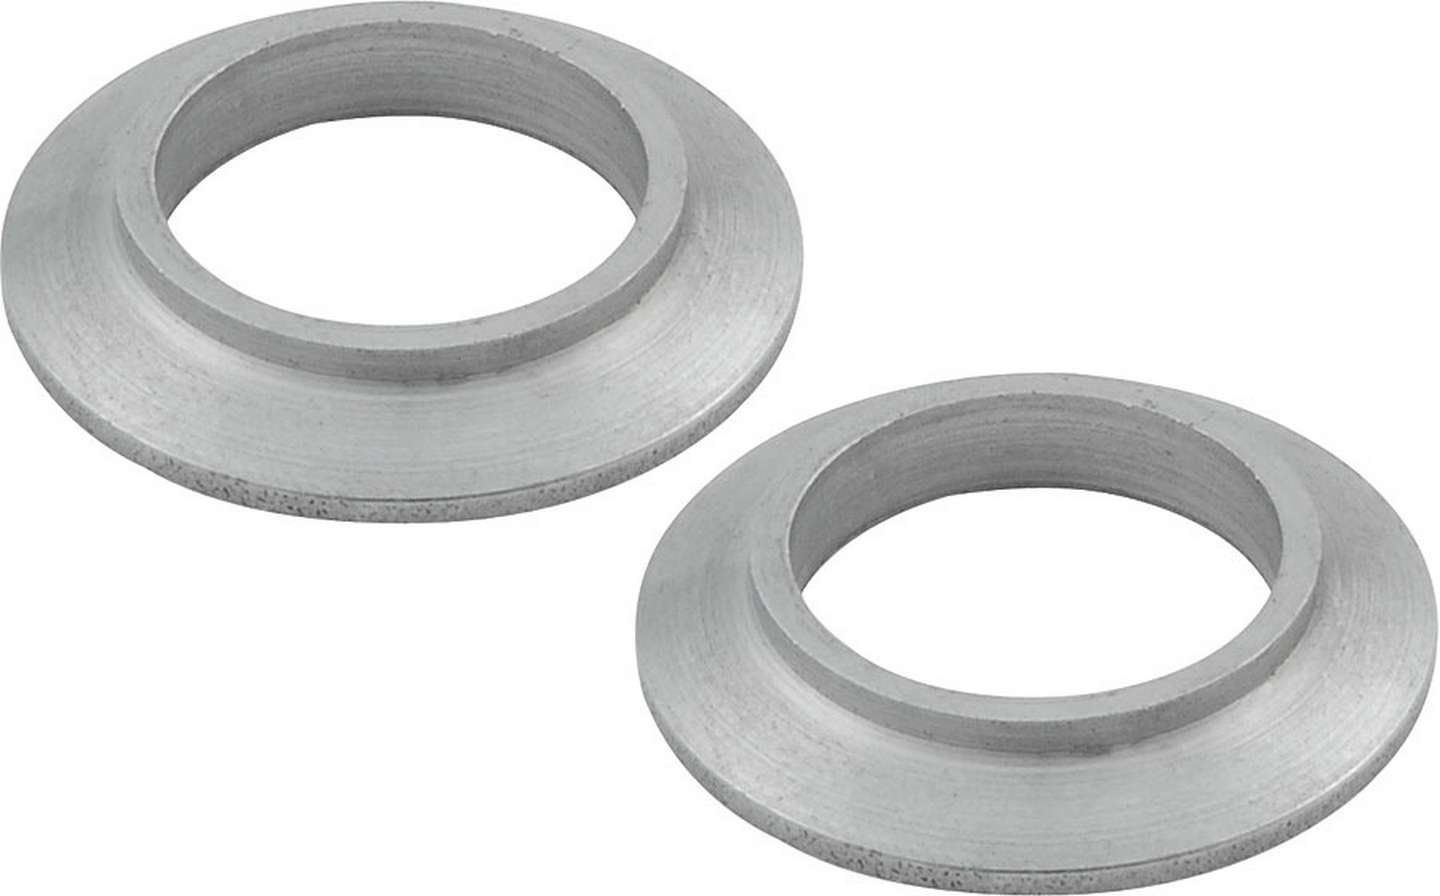 Allstar Performance 60189-10 Tapered Spacer, 3/4 in ID, 21/64 in Thick, Steel, Zinc Oxide, Universal, Set of 10